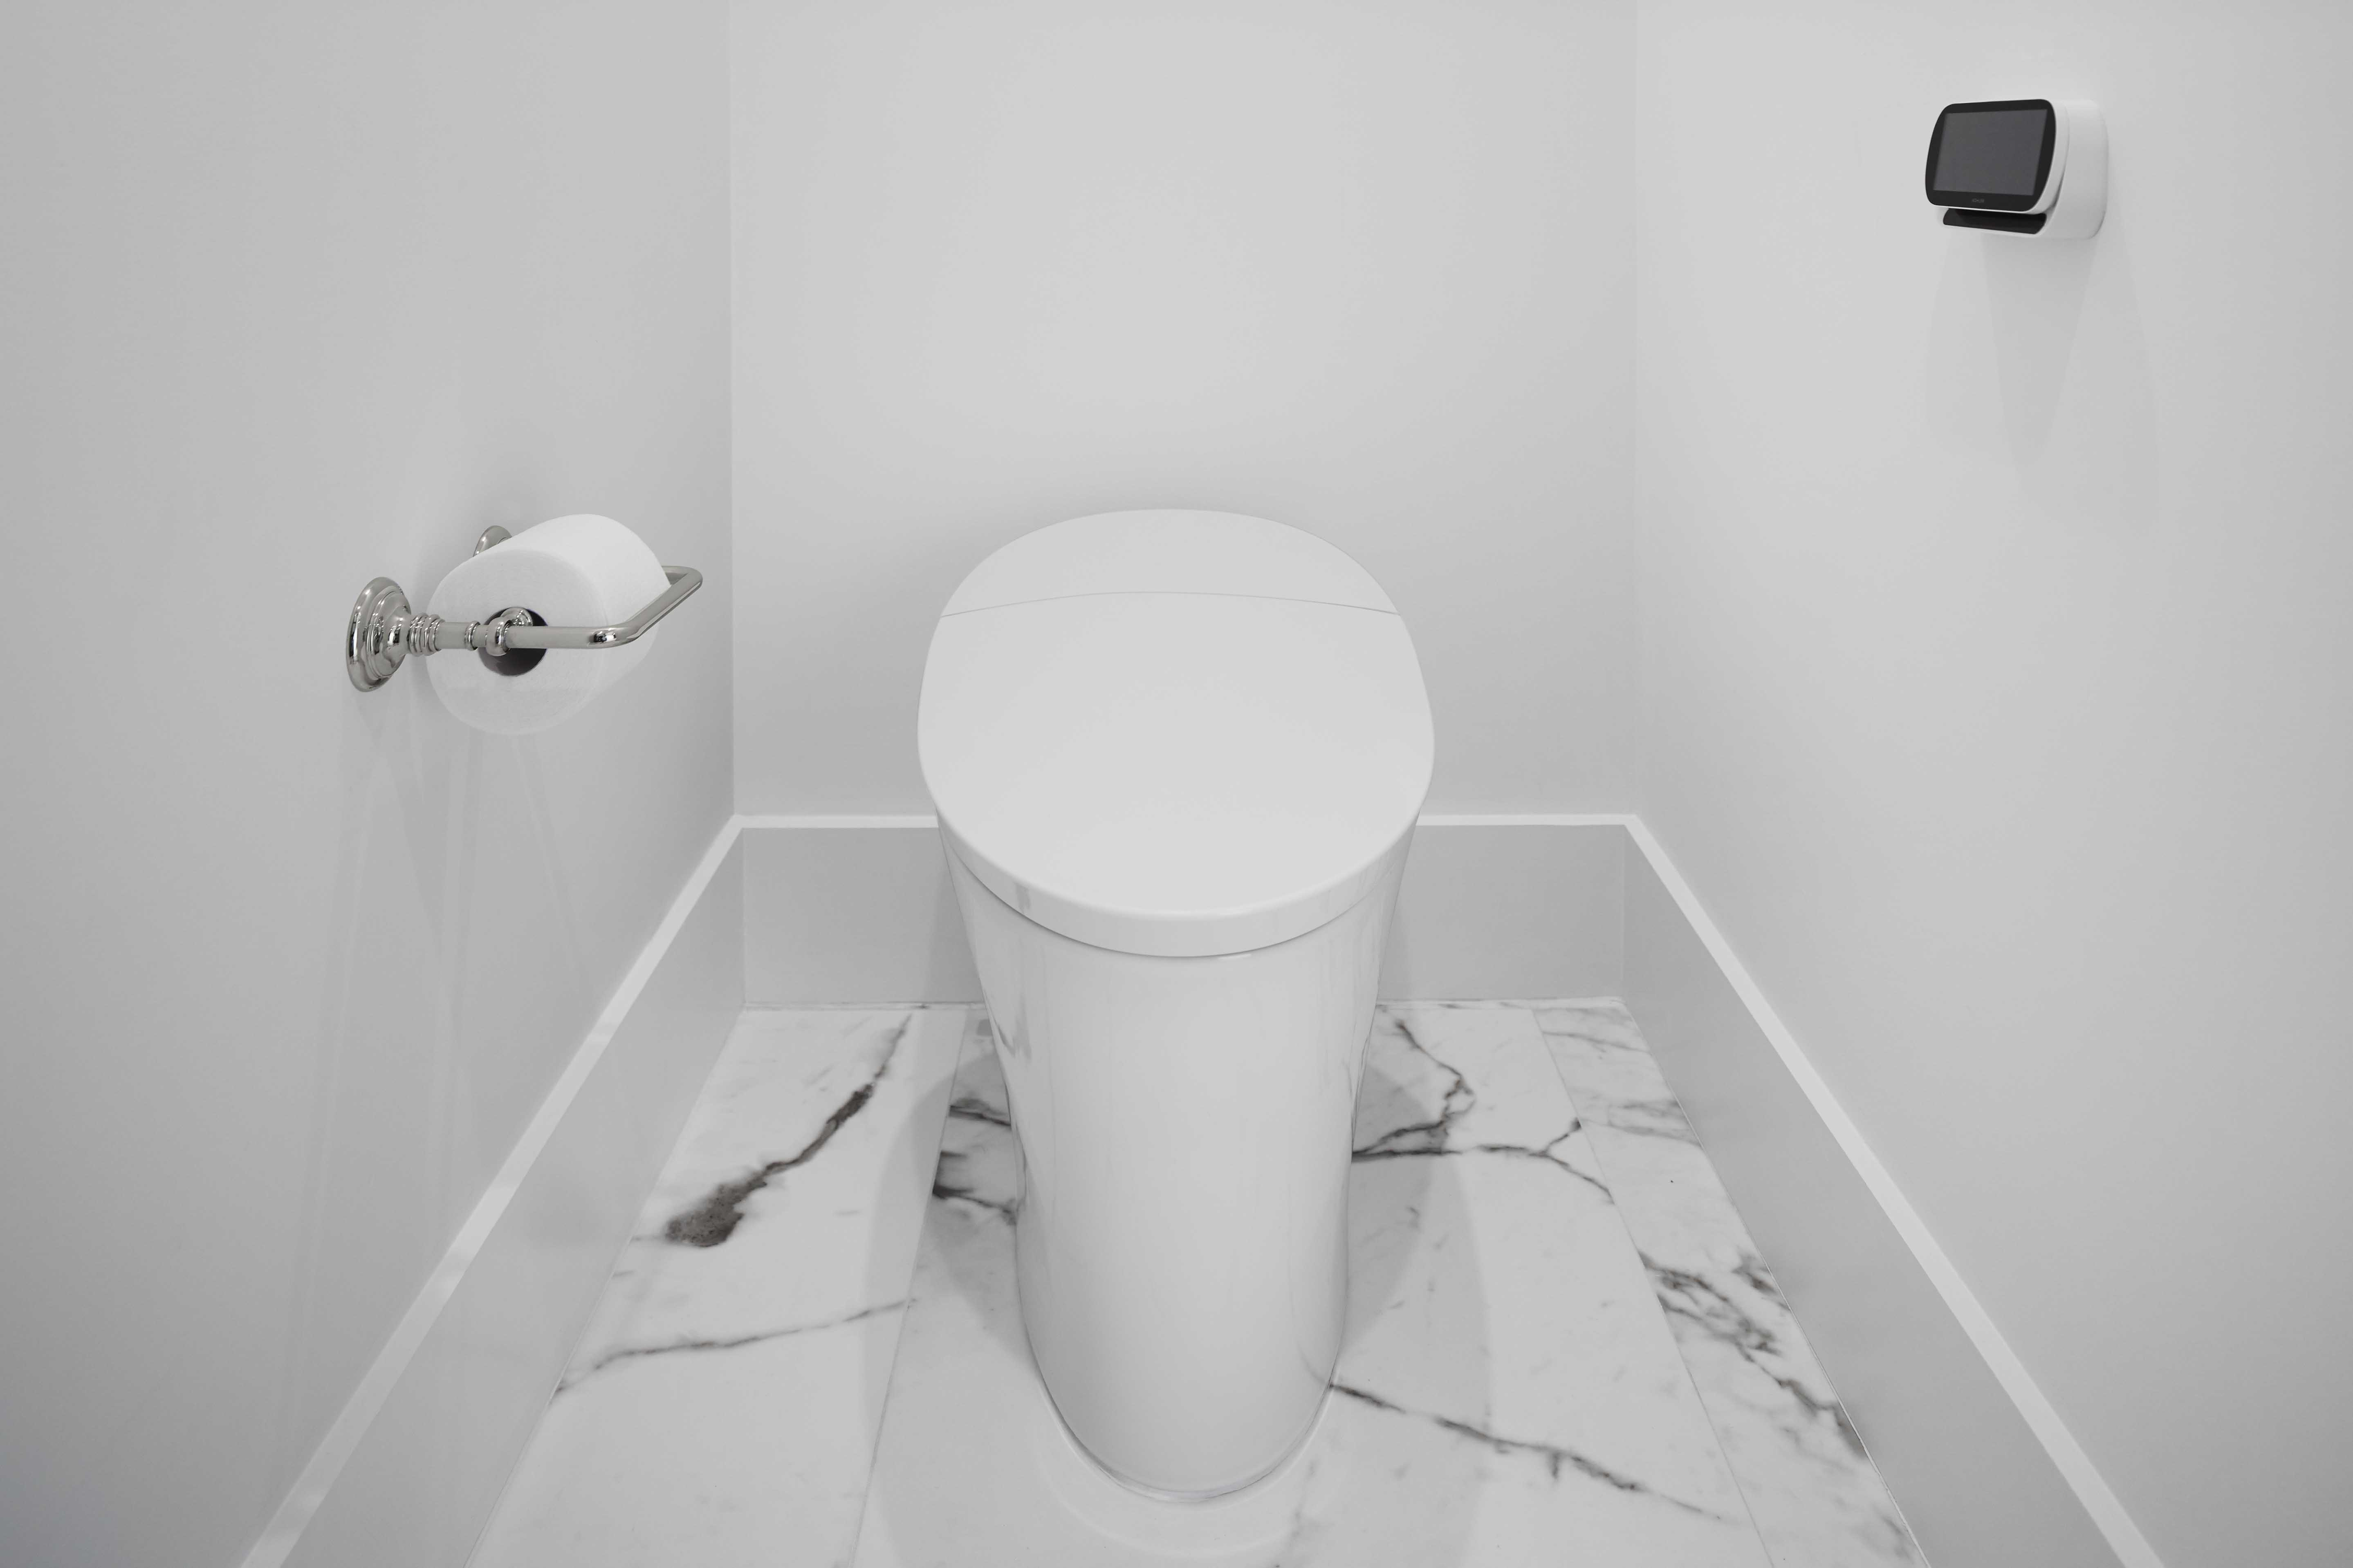 Veil Intelligent Toilet     Artifacts Toilet Tissue Holder     A remote controlled toilet with bidet functionality delivers a higher sense of clean and comfort with warm-water cleansing, a heated seat and more.